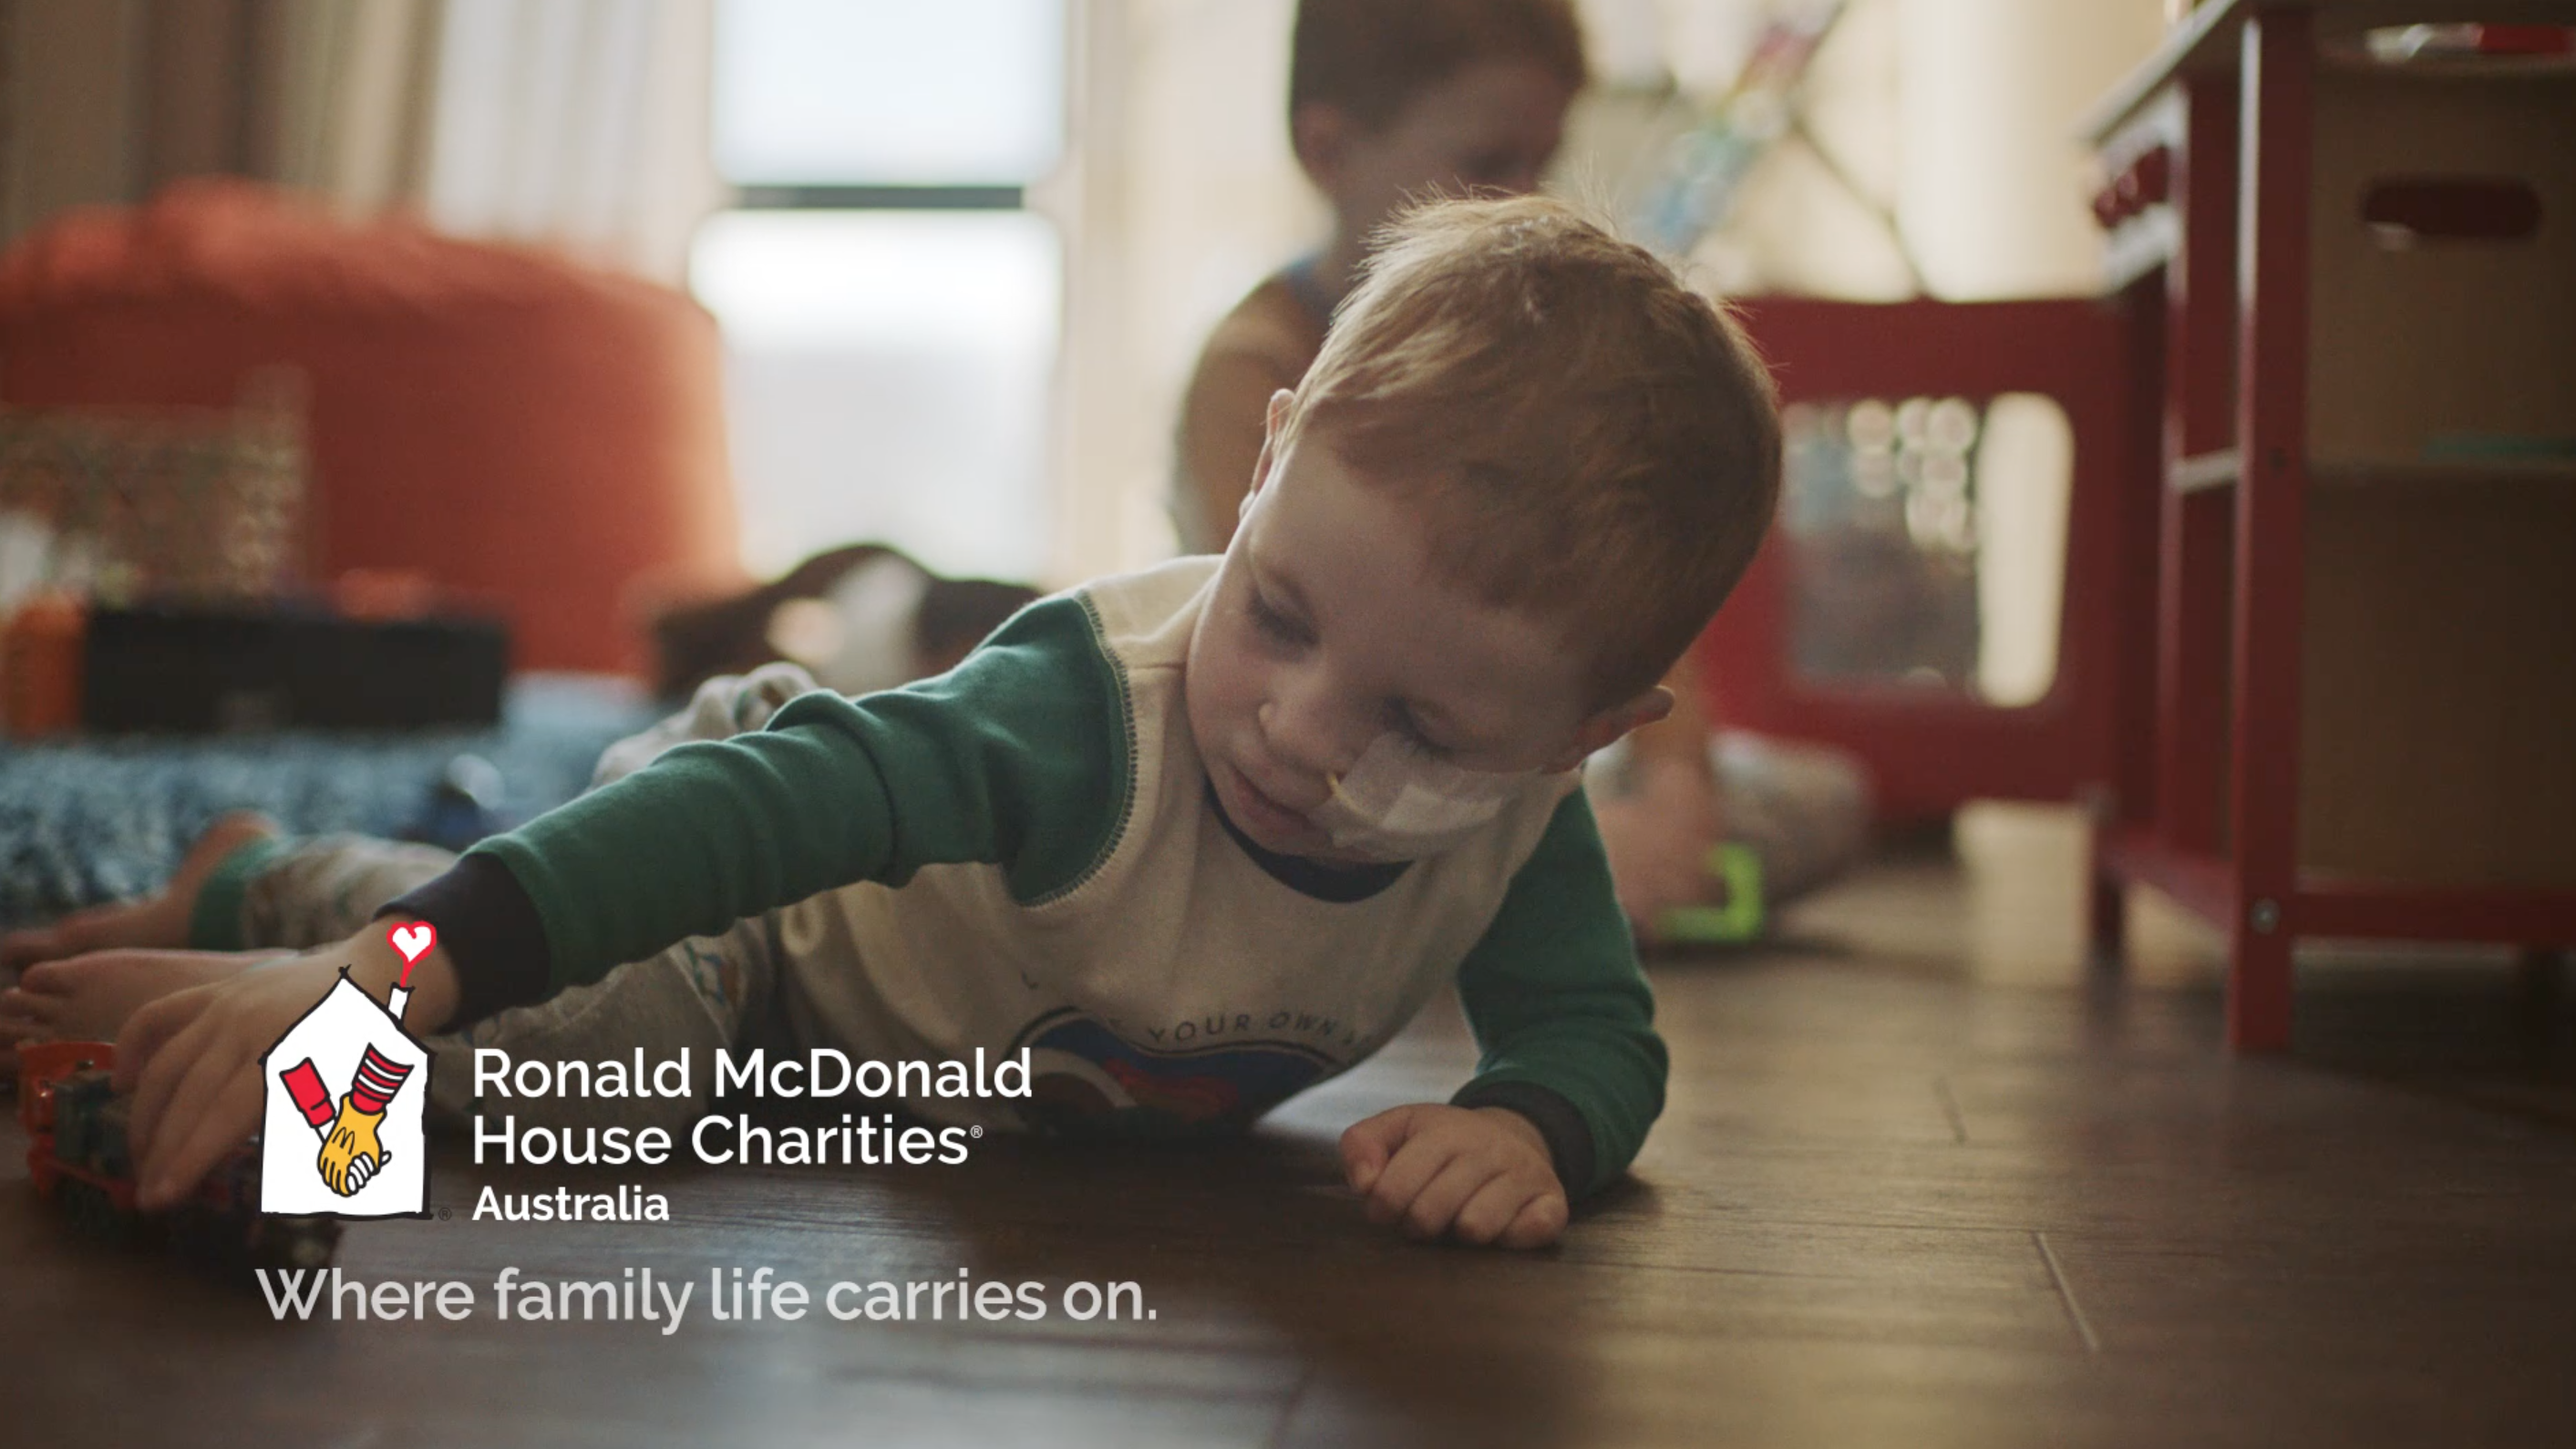 Ronald McDonald House Charities helps family life carry on for those with seriously ill children in latest campaign via DDB Sydney